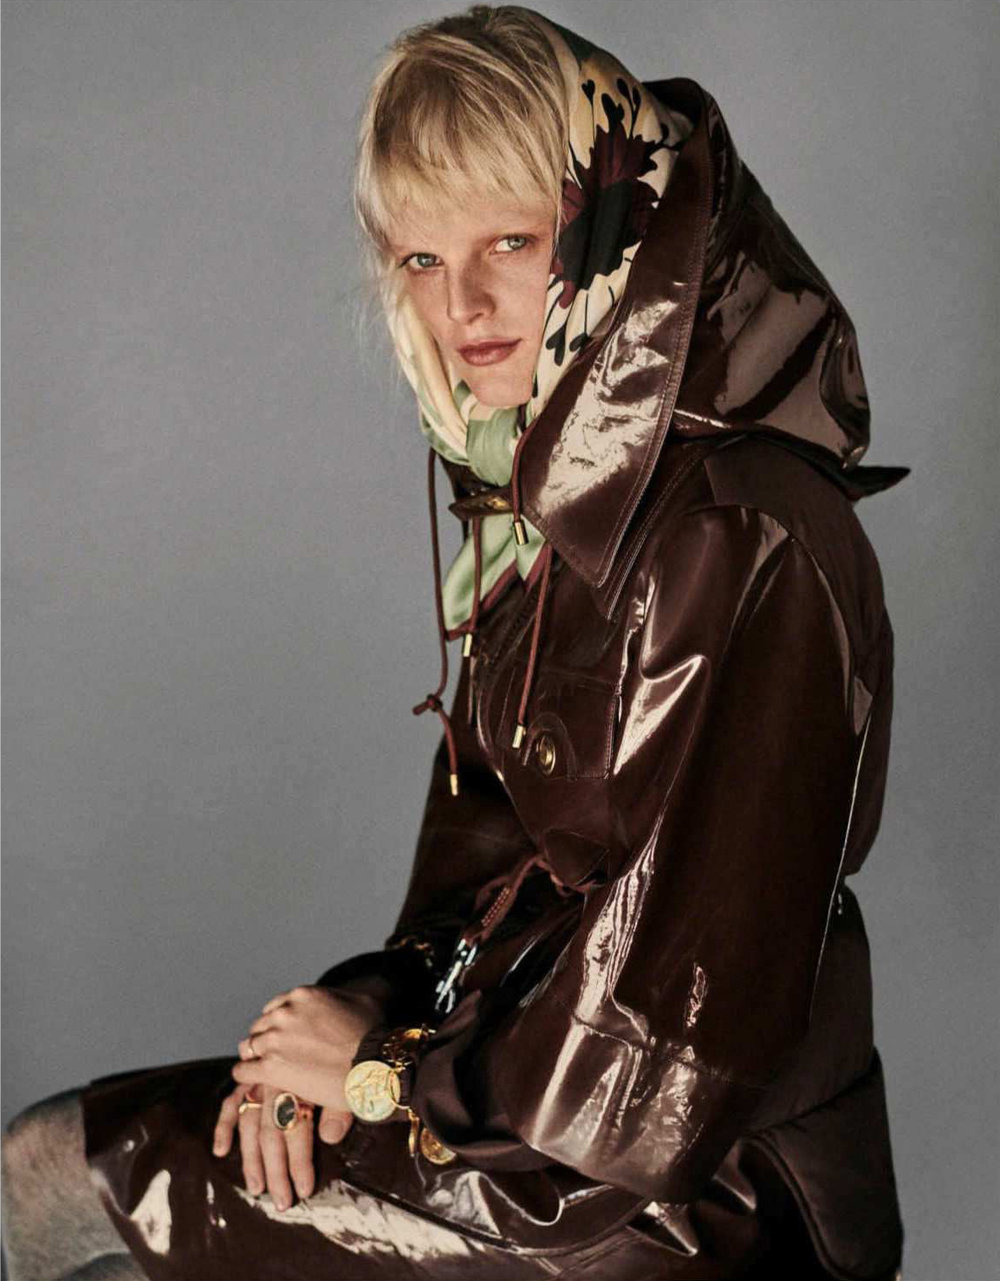 Hanne Gaby Odiele by Giampaolo Sgura for Vogue Germany Sept 2018 (1).jpg